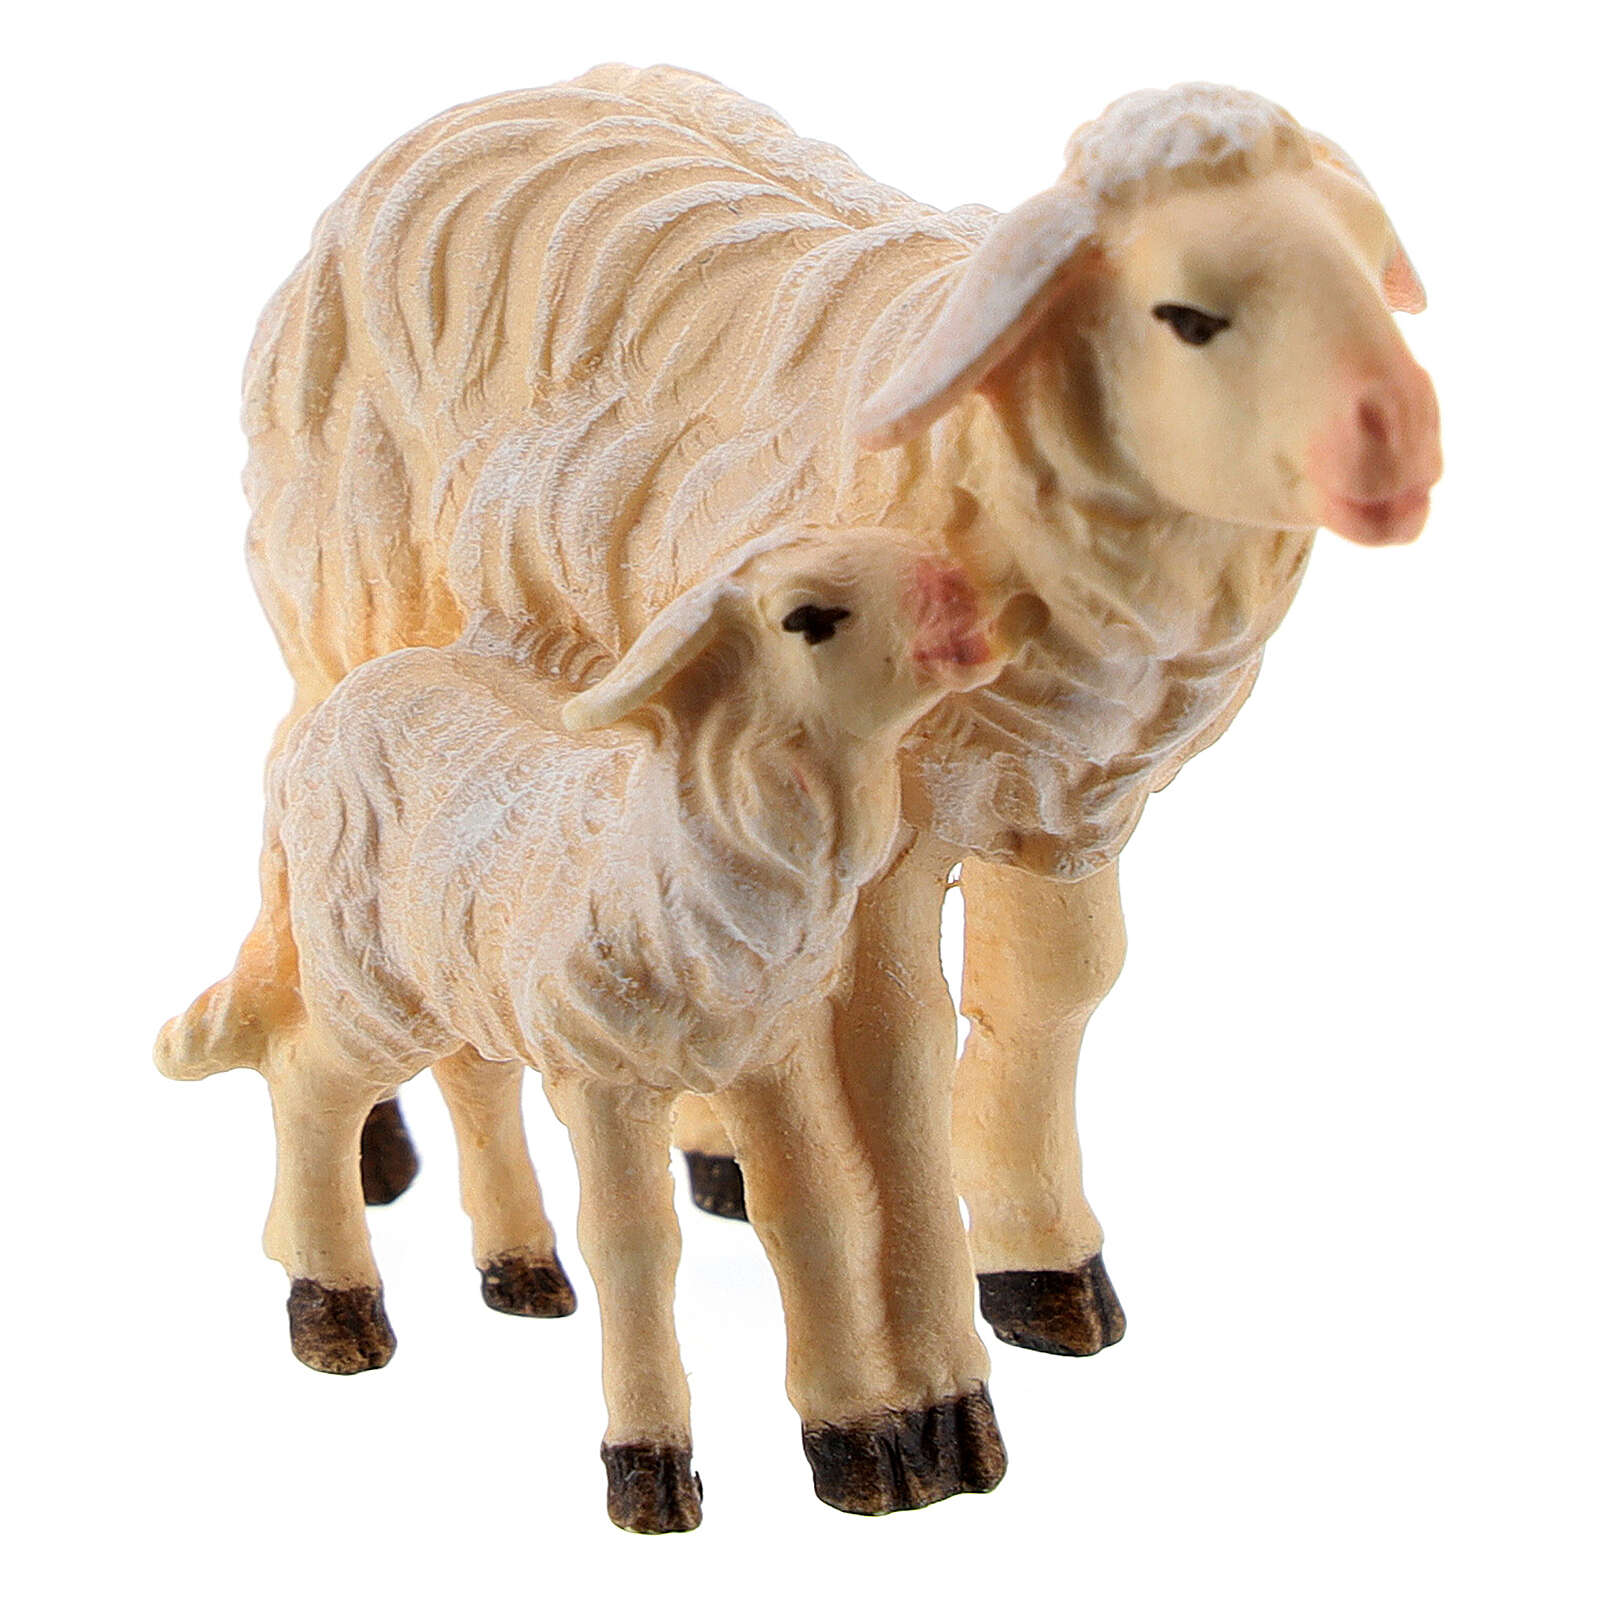 Kostner Nativity Scene 9.5 cm, standing sheep and lamb, in painted wood 4